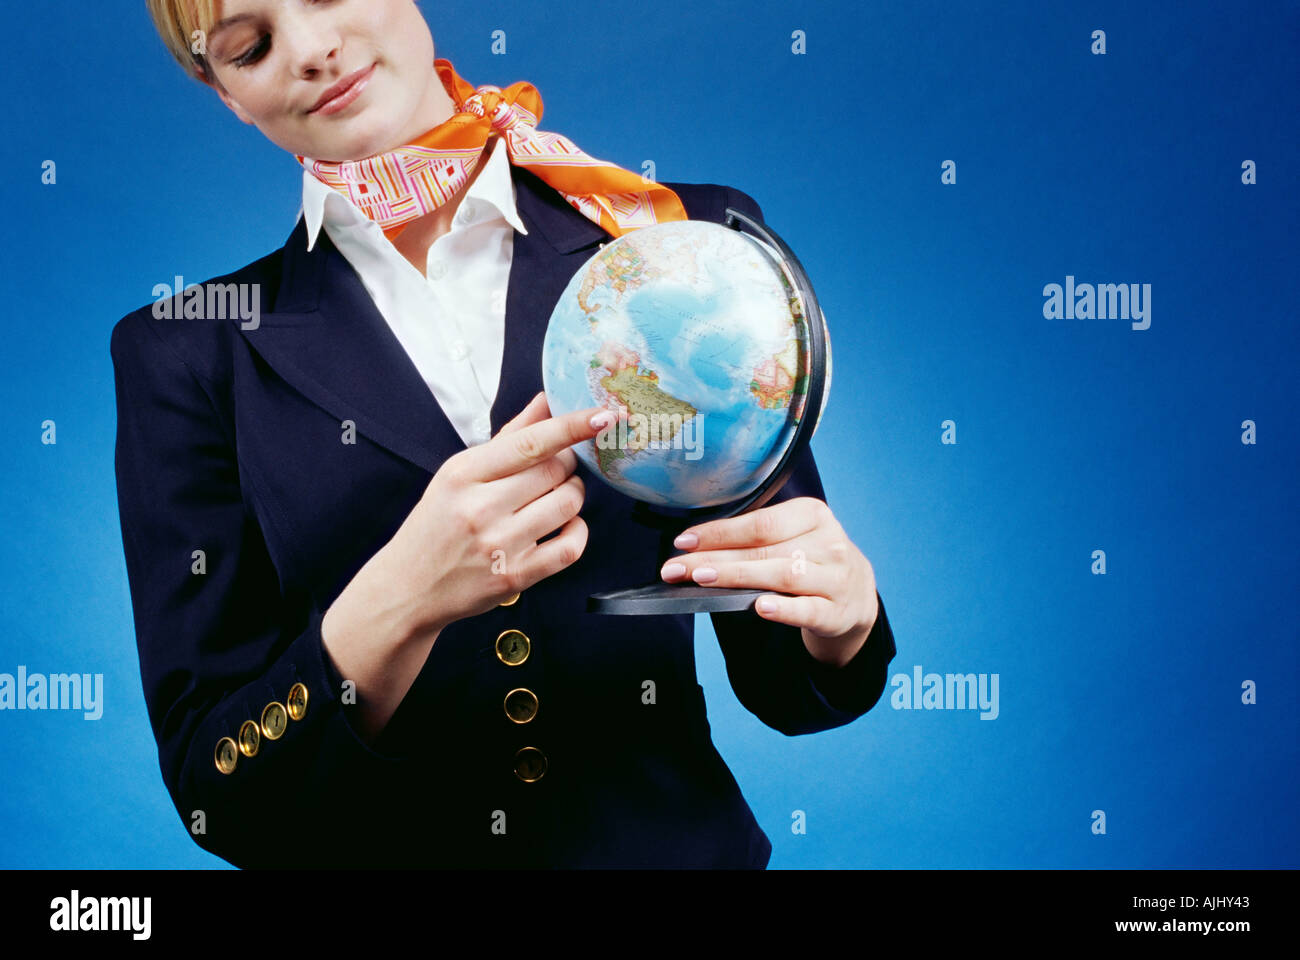 Air hostess pointing to a globe - Stock Image